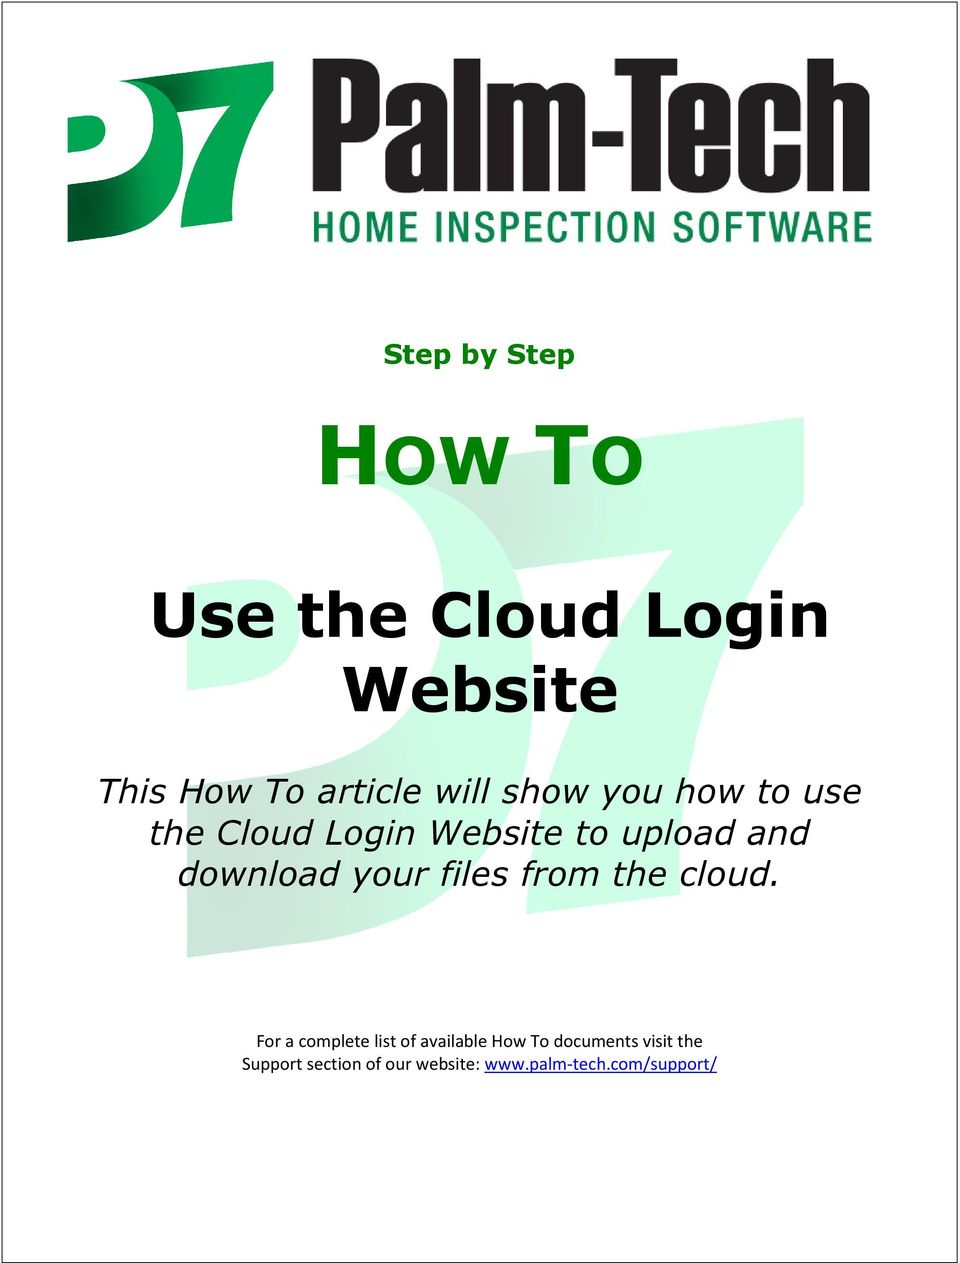 your files from the cloud.